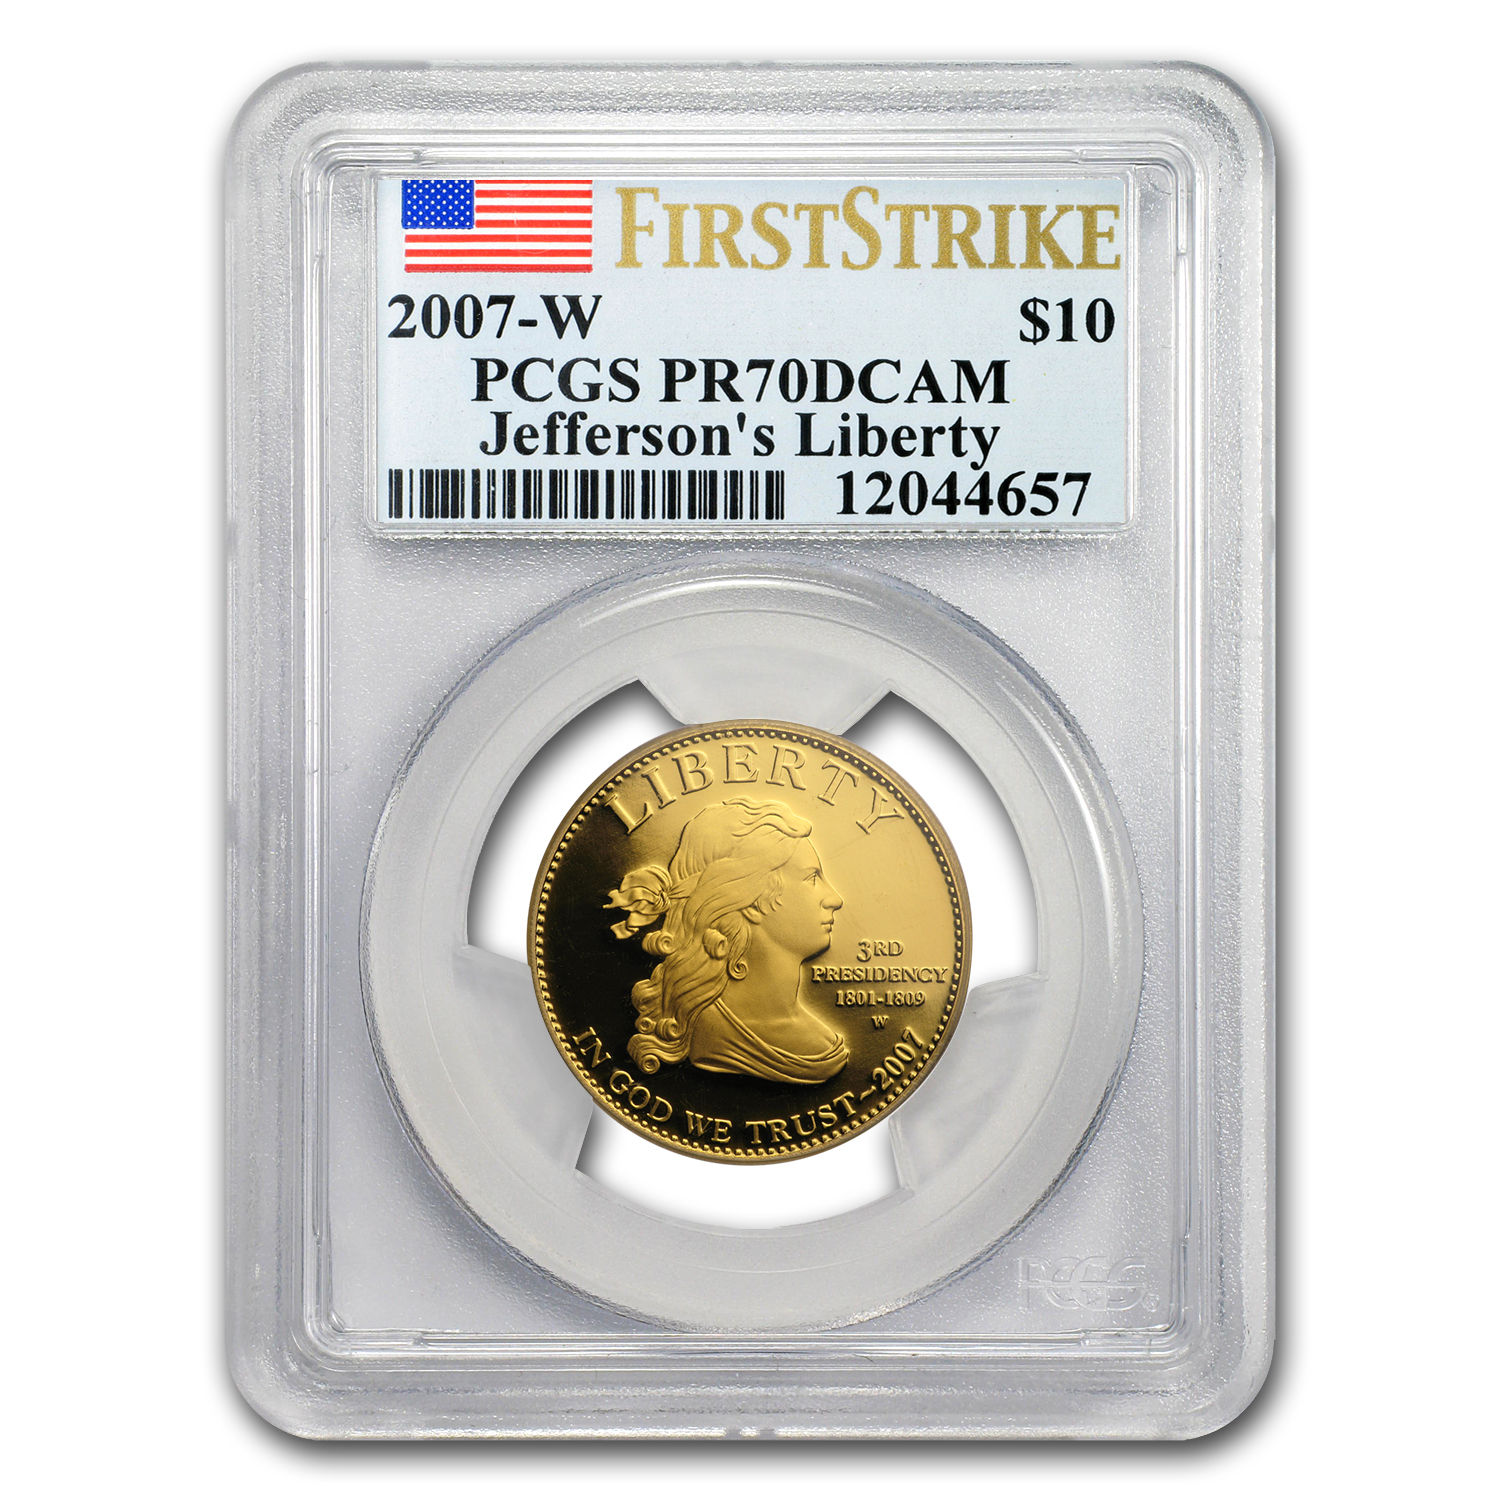 2007-W 1/2 oz Proof Gold Jefferson's Liberty PR-70 DCAM (FS) PCGS